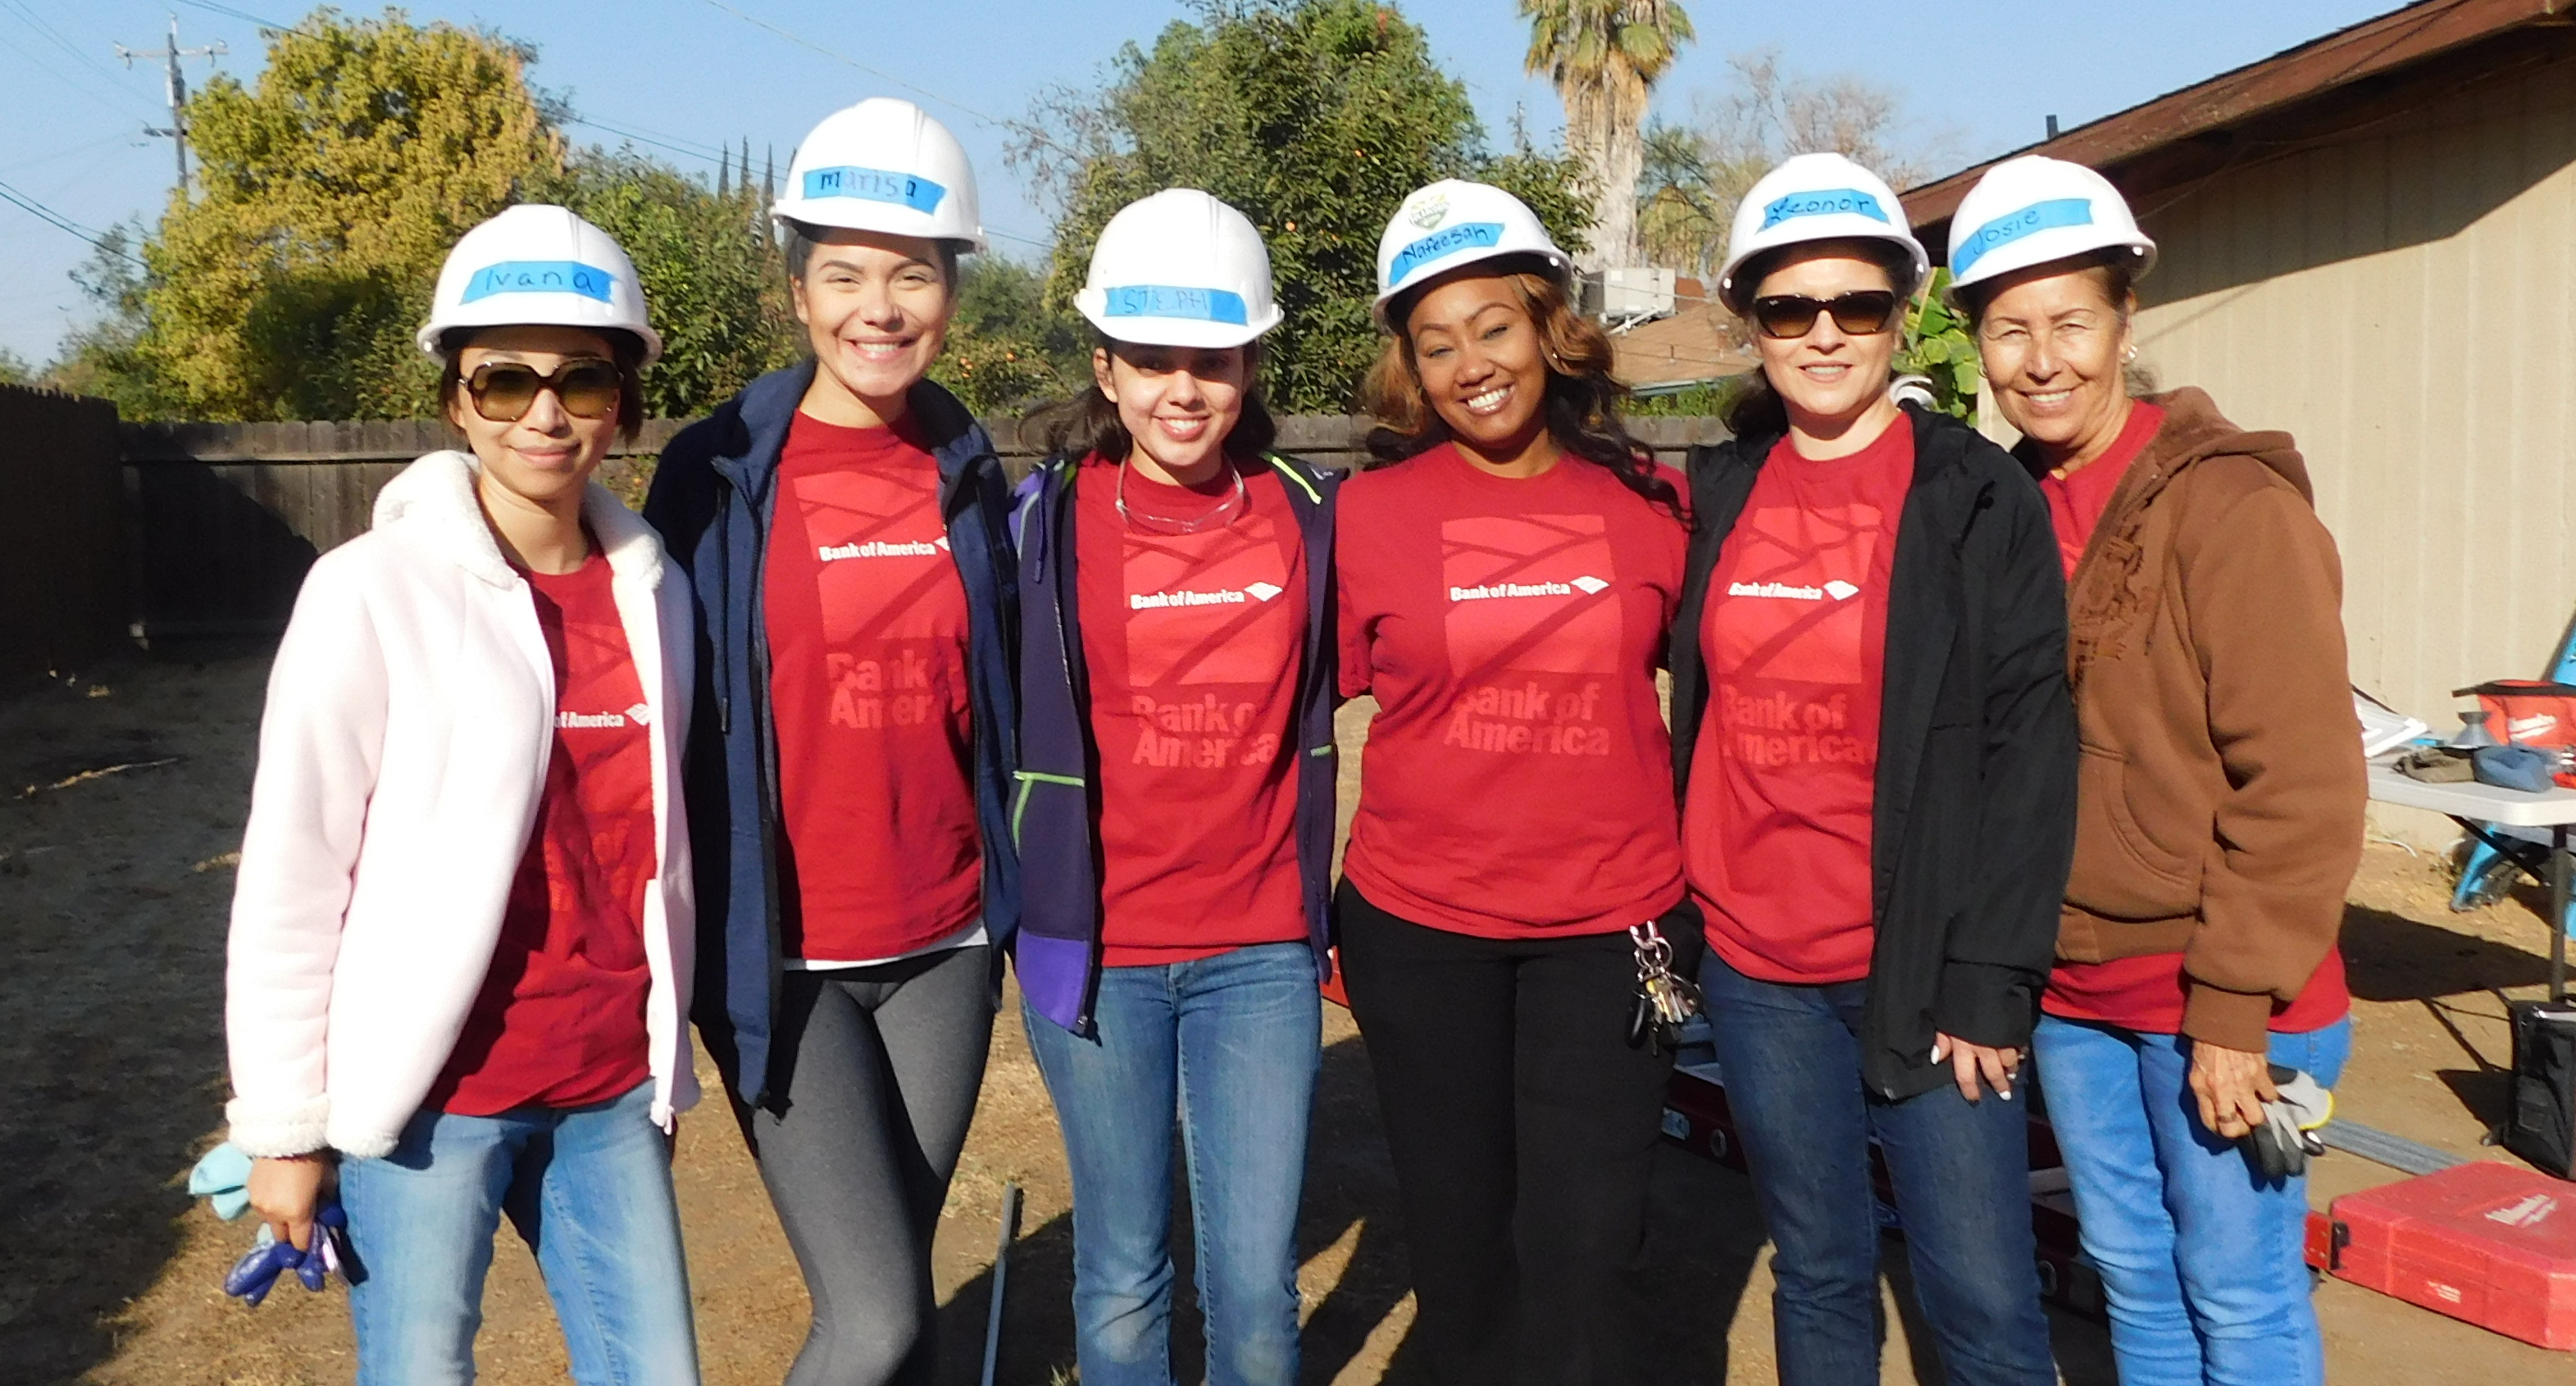 Bank of America Staff at an installation